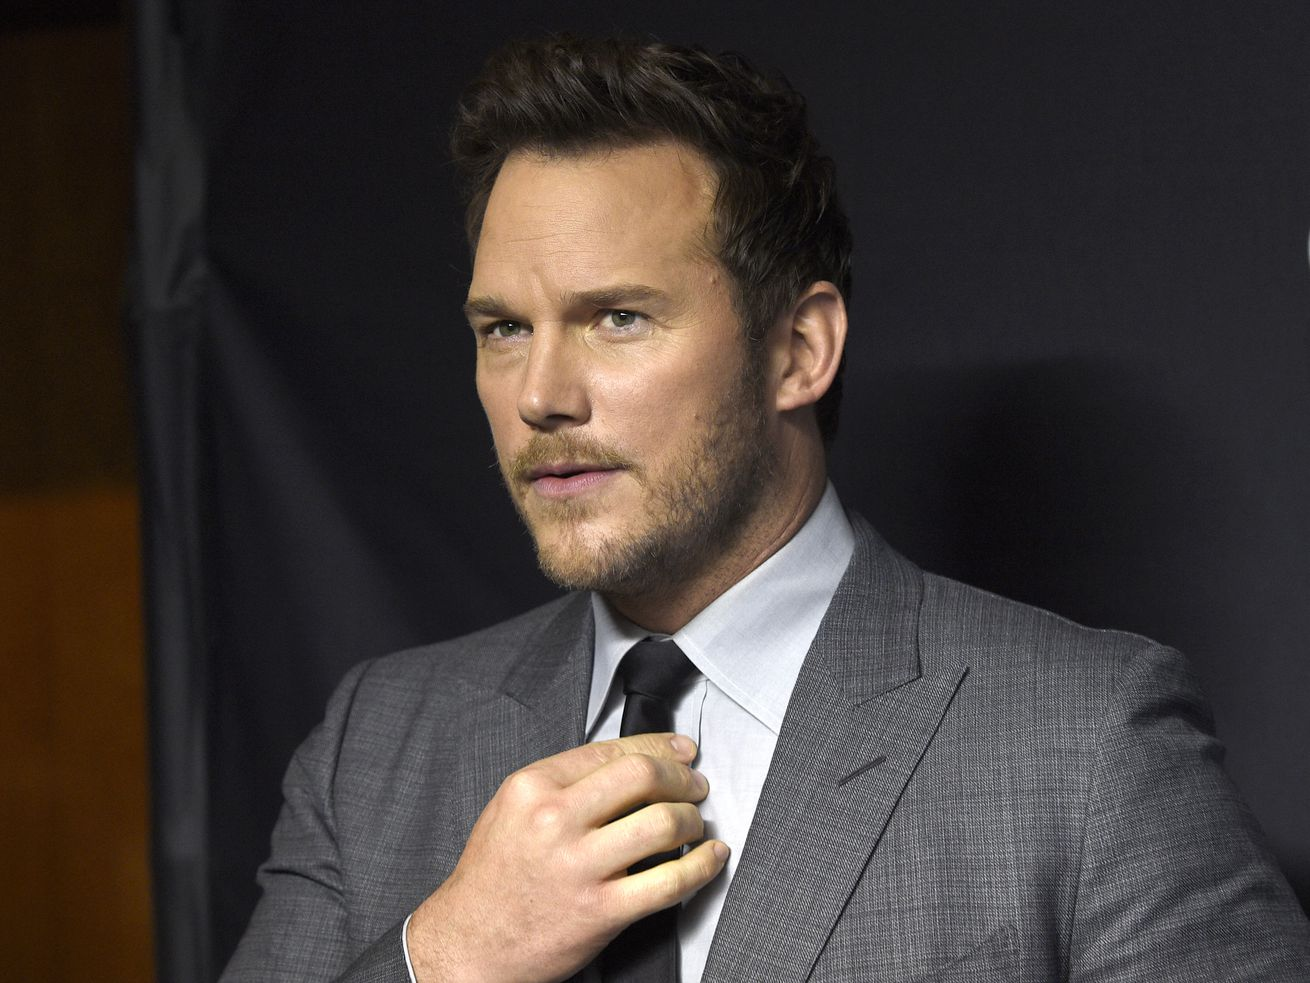 Chris Pratt isn't joining his fellow Avengers in a fundraiser for Joe Biden, and Twitter piled on